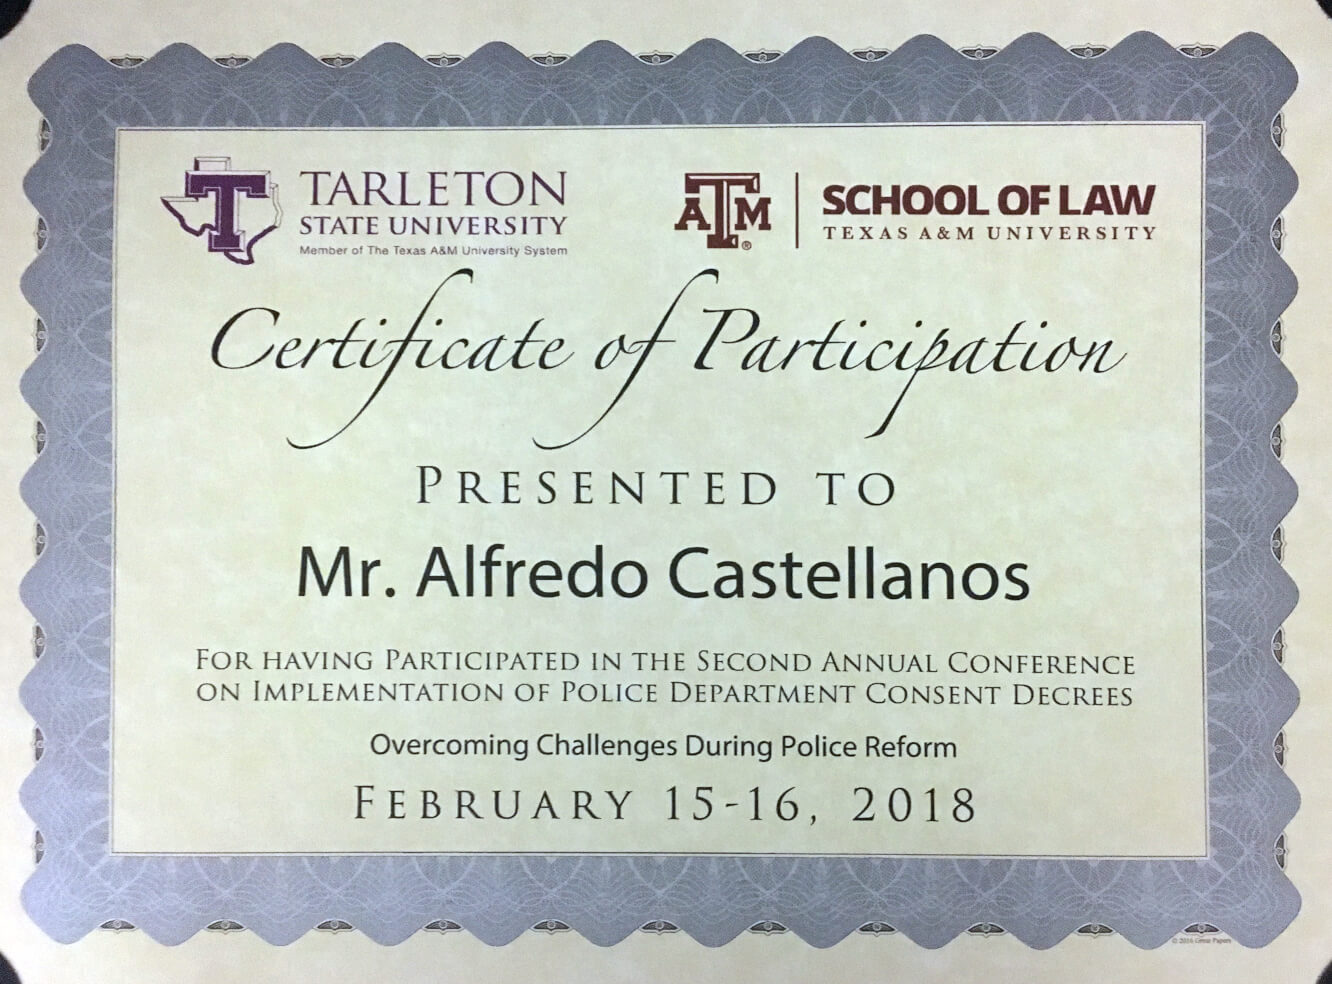 Second Annual Conference on Implementation of Police Department Consent Decrees -Tarleton's School of Criminology, Criminal Justice and Strategic Studies / Texas A&M University School of Law.